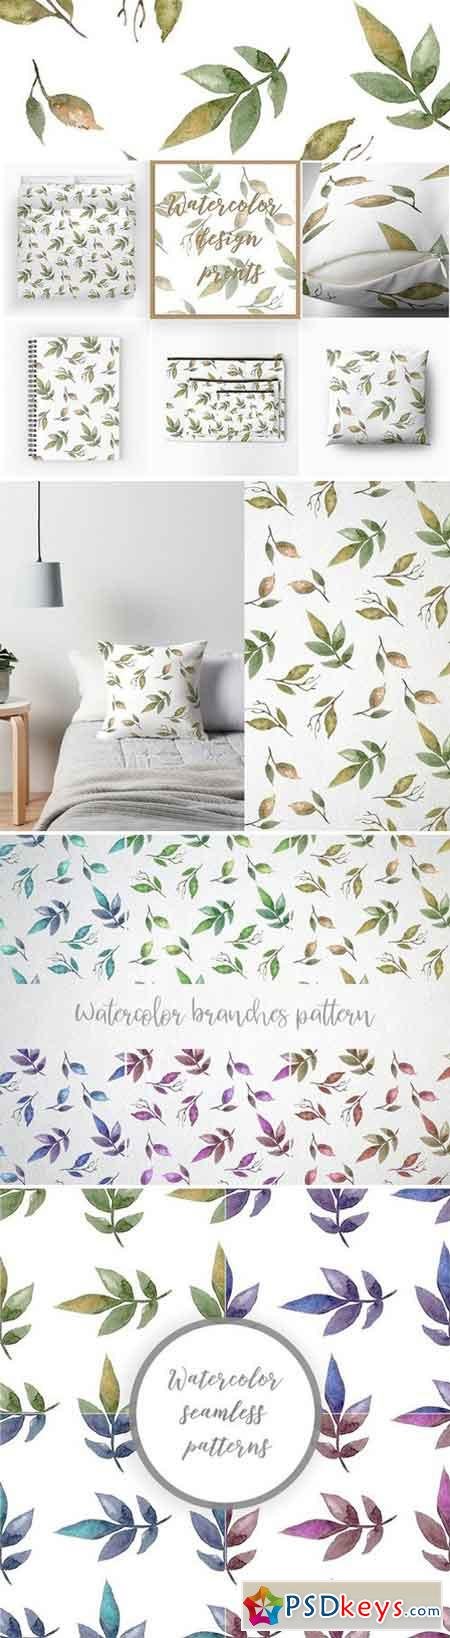 Watercolor branches pattern 2320238